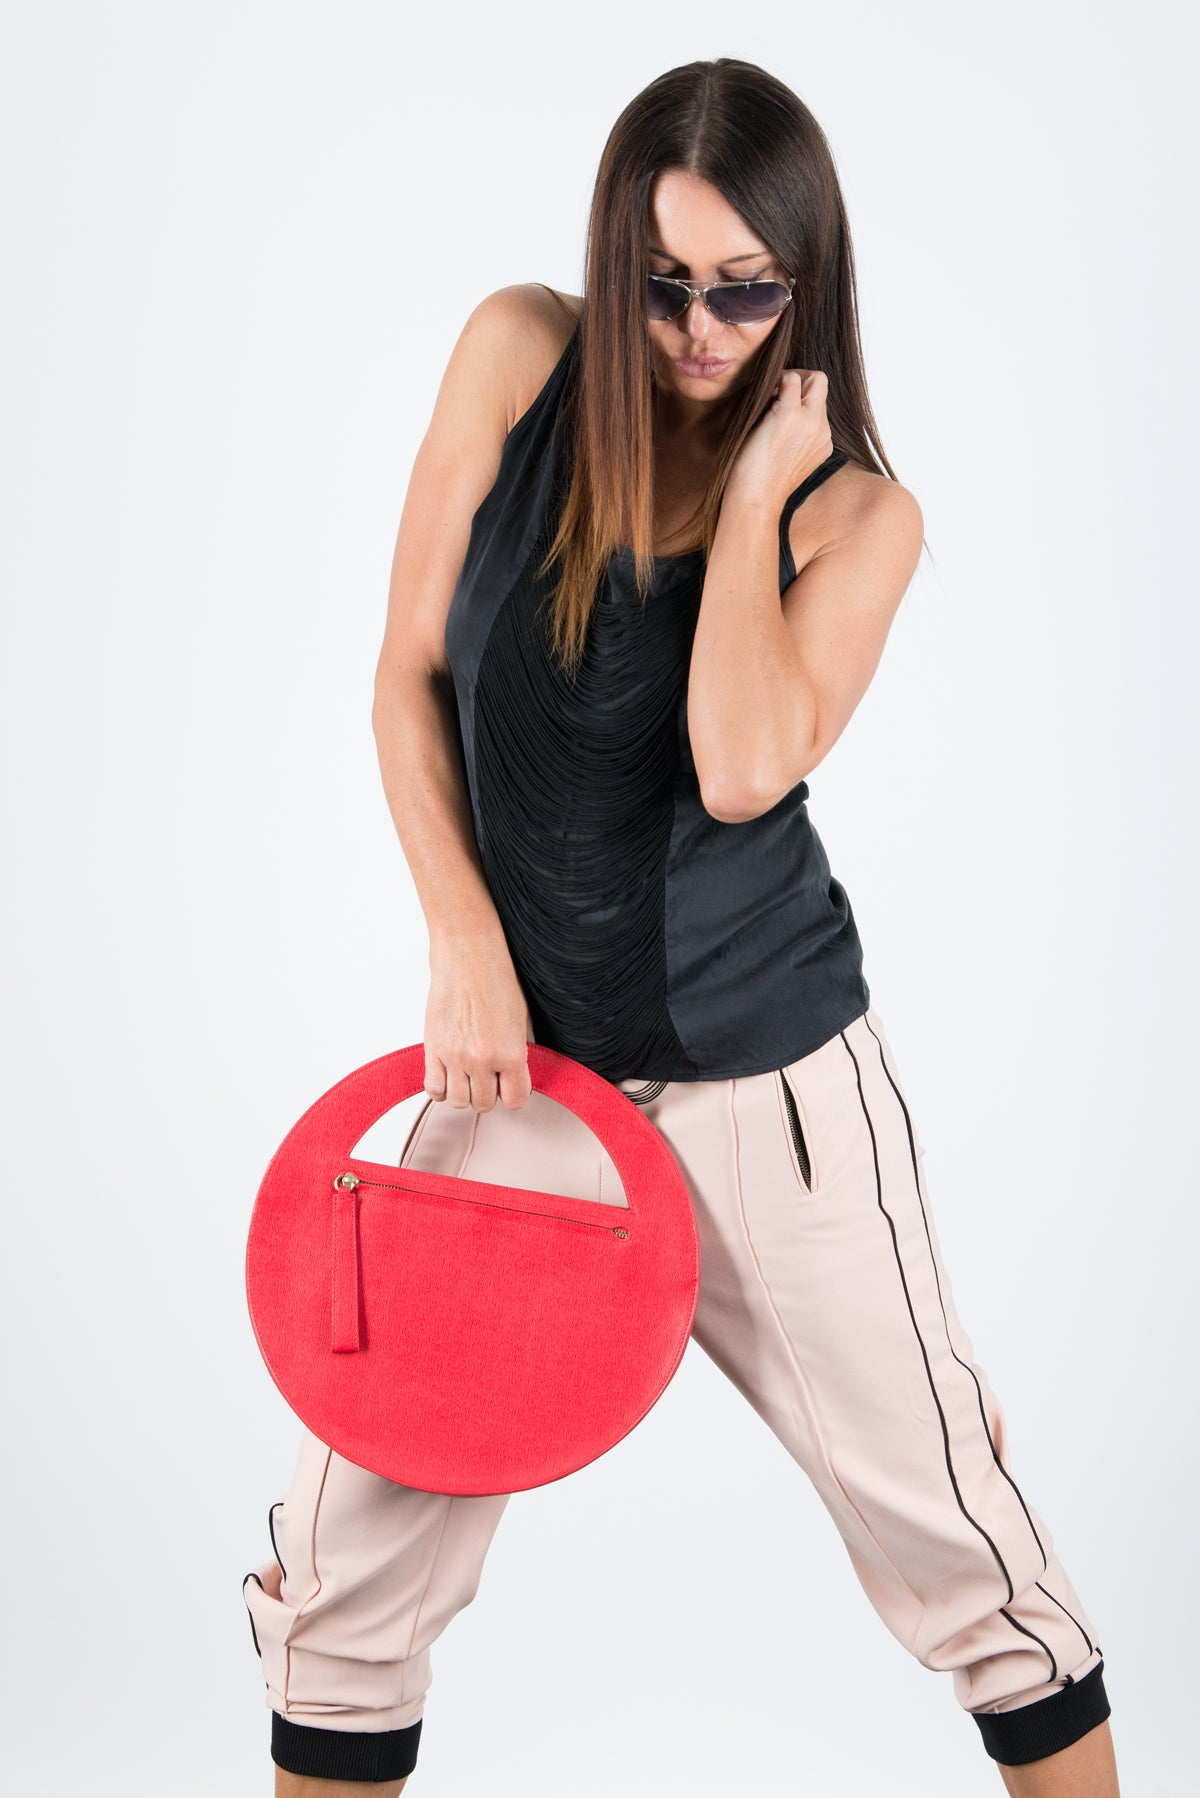 Red Genuine Leather Clutch Hand Bag, Evening Leather Bag, Bags & Accessories